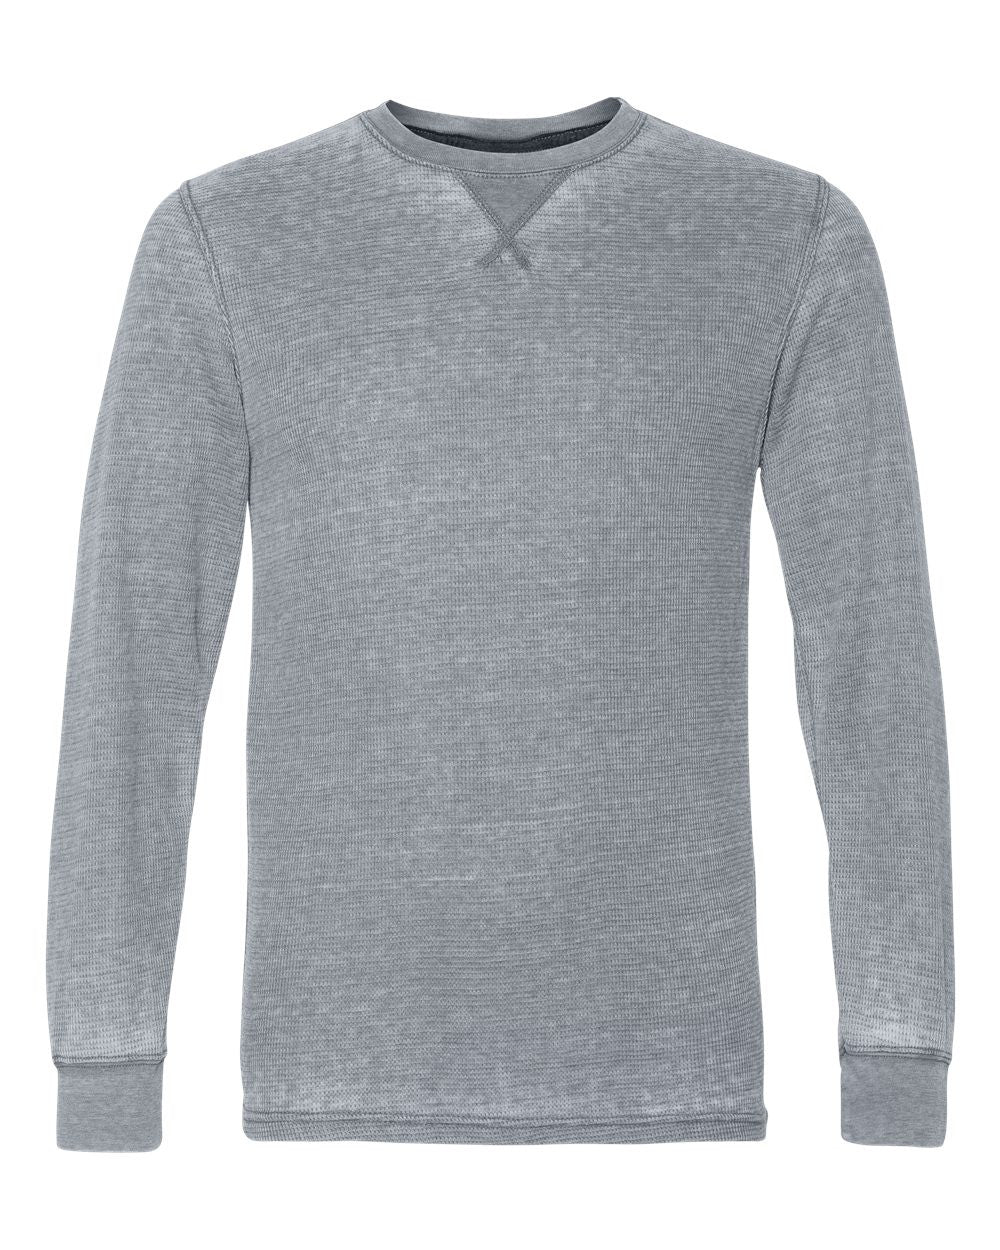 Thermal Long Sleeve T-Shirt by J america